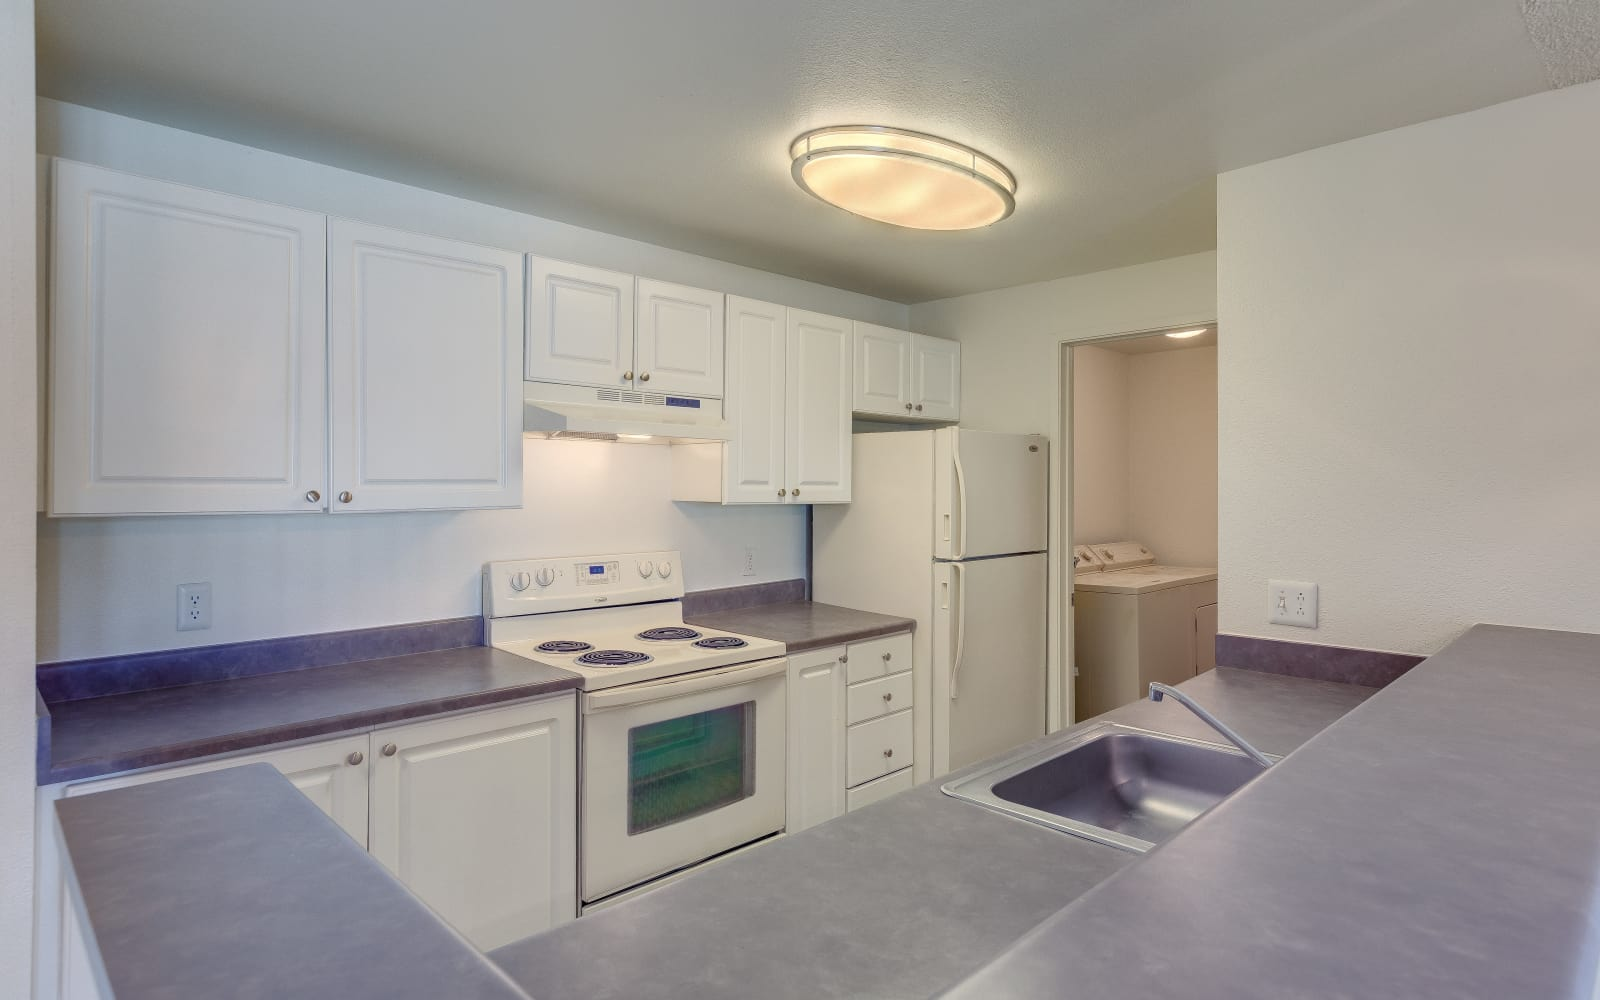 Kitchen featuring white finishes at Alaire Apartments in Renton, Washington